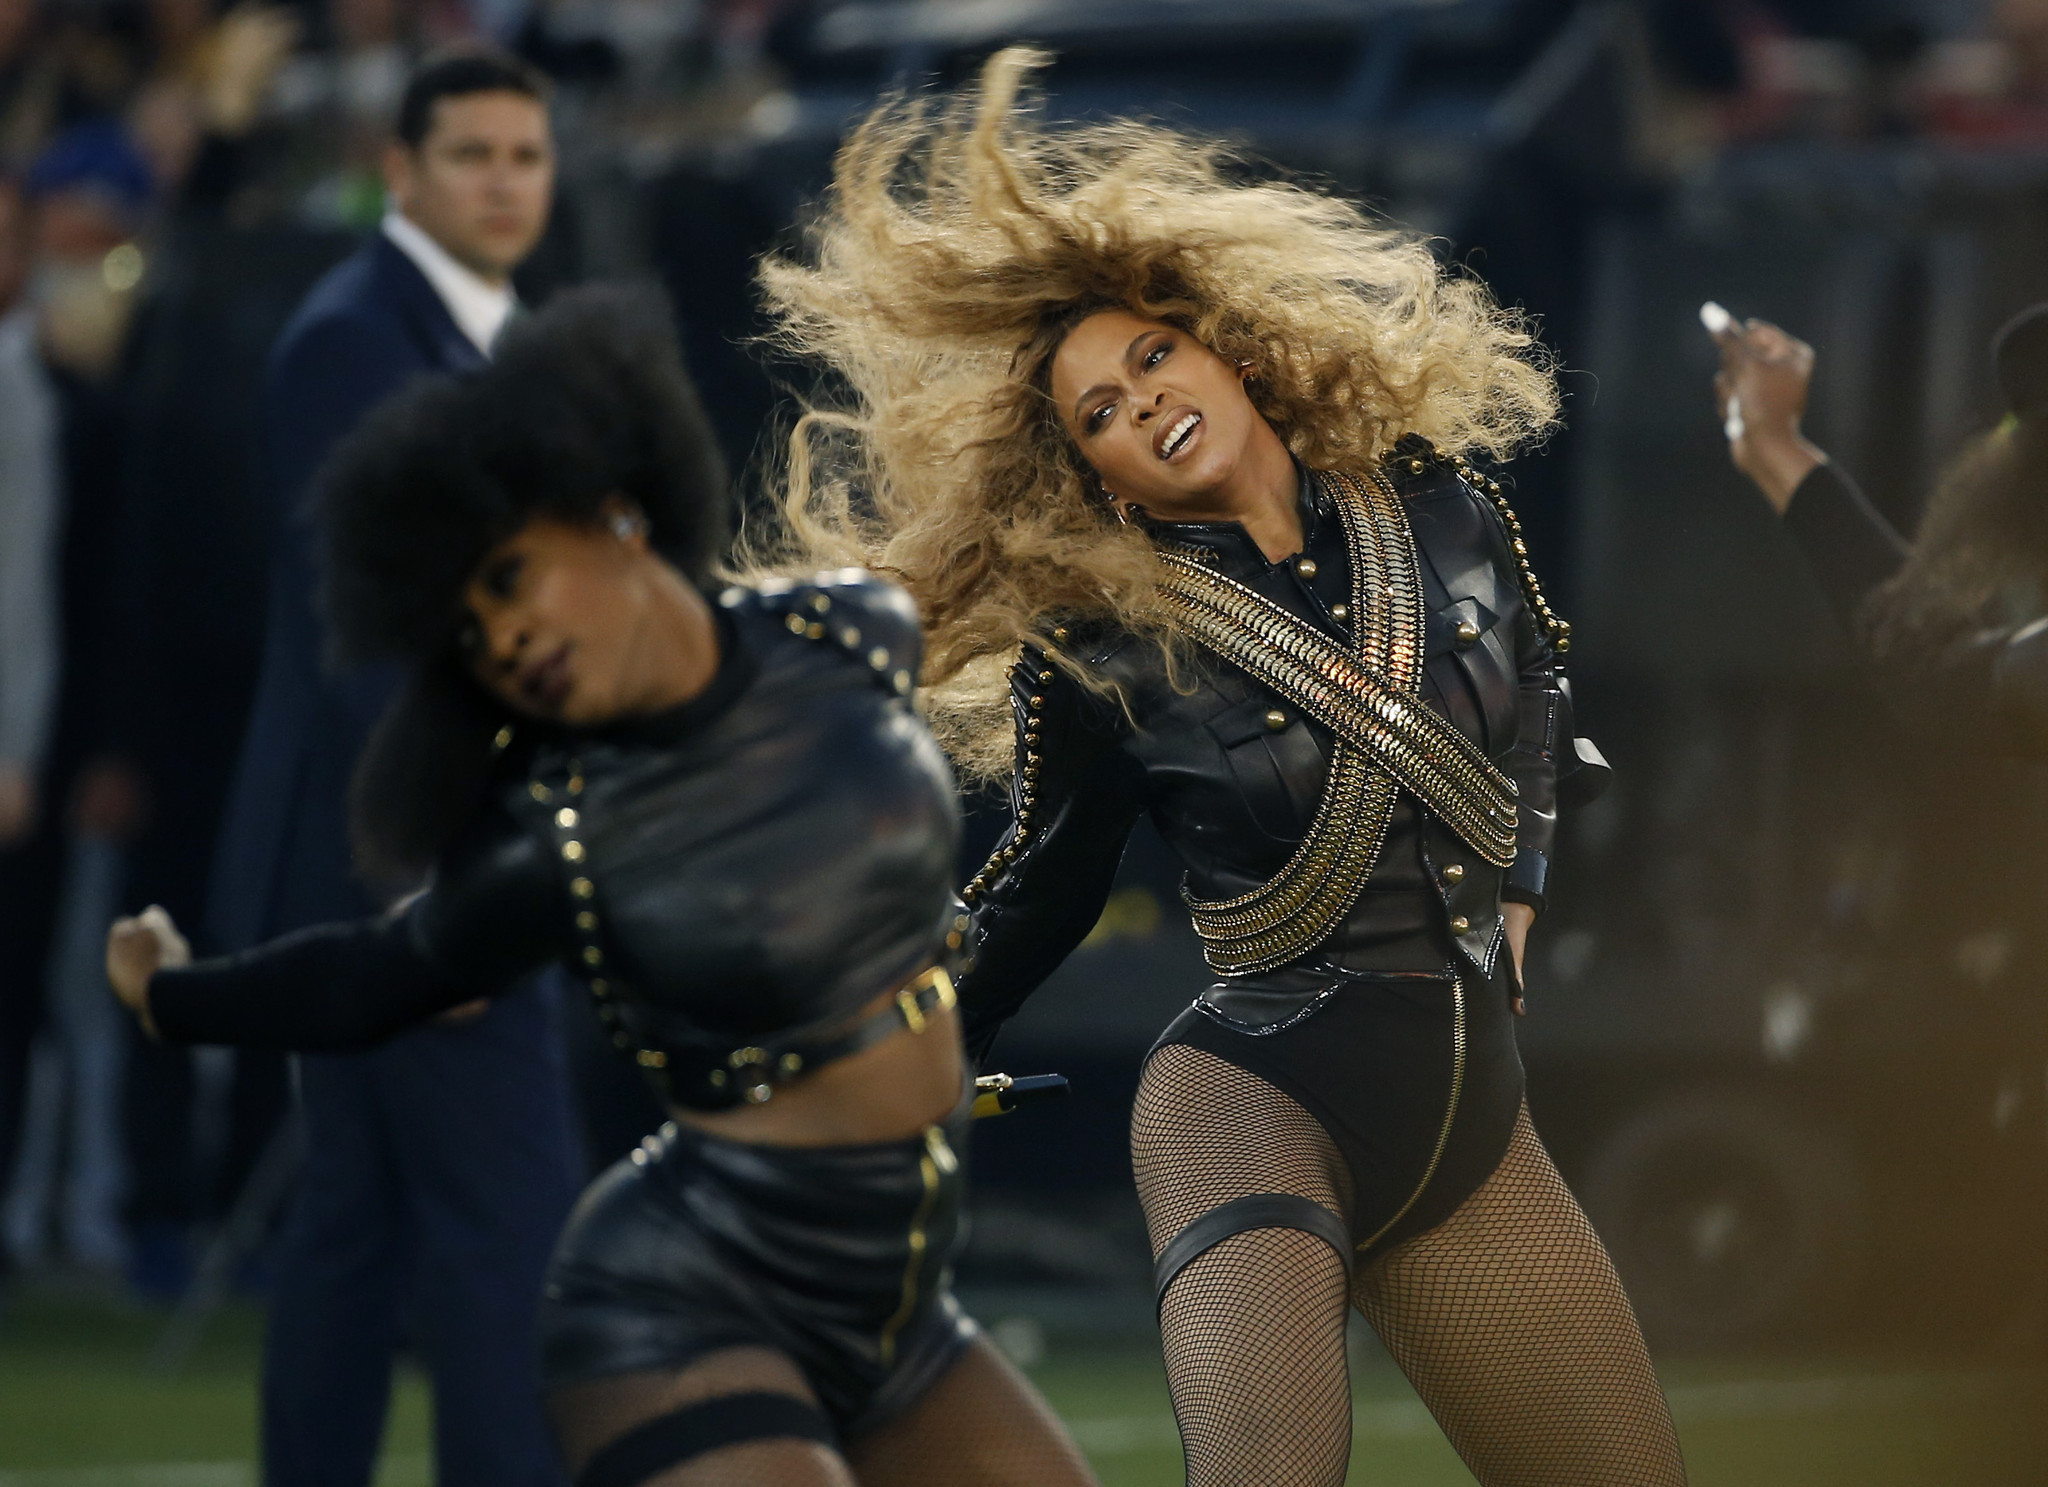 Ct-super-bowl-halftime-show-2016-pictures-20160207